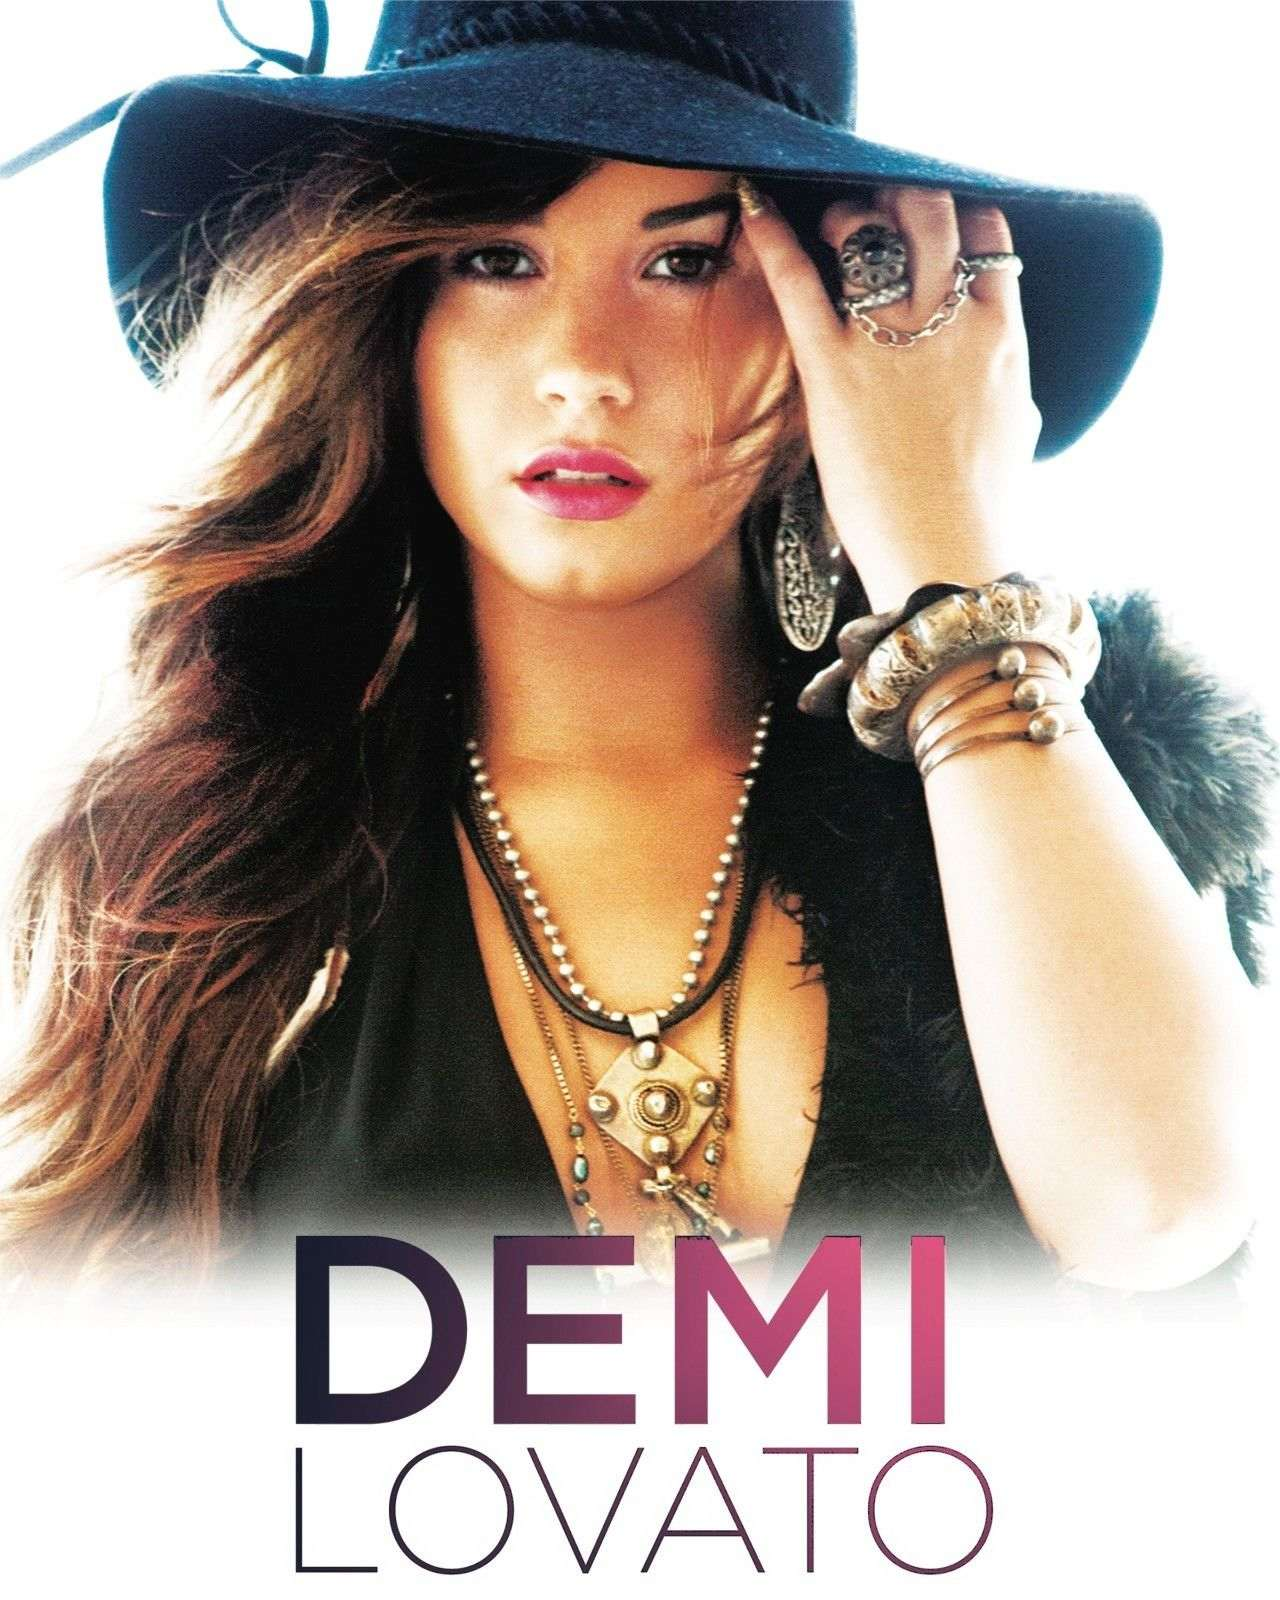 Demi Lovato Limited 24KT Cd Disc Collectible Award Quality